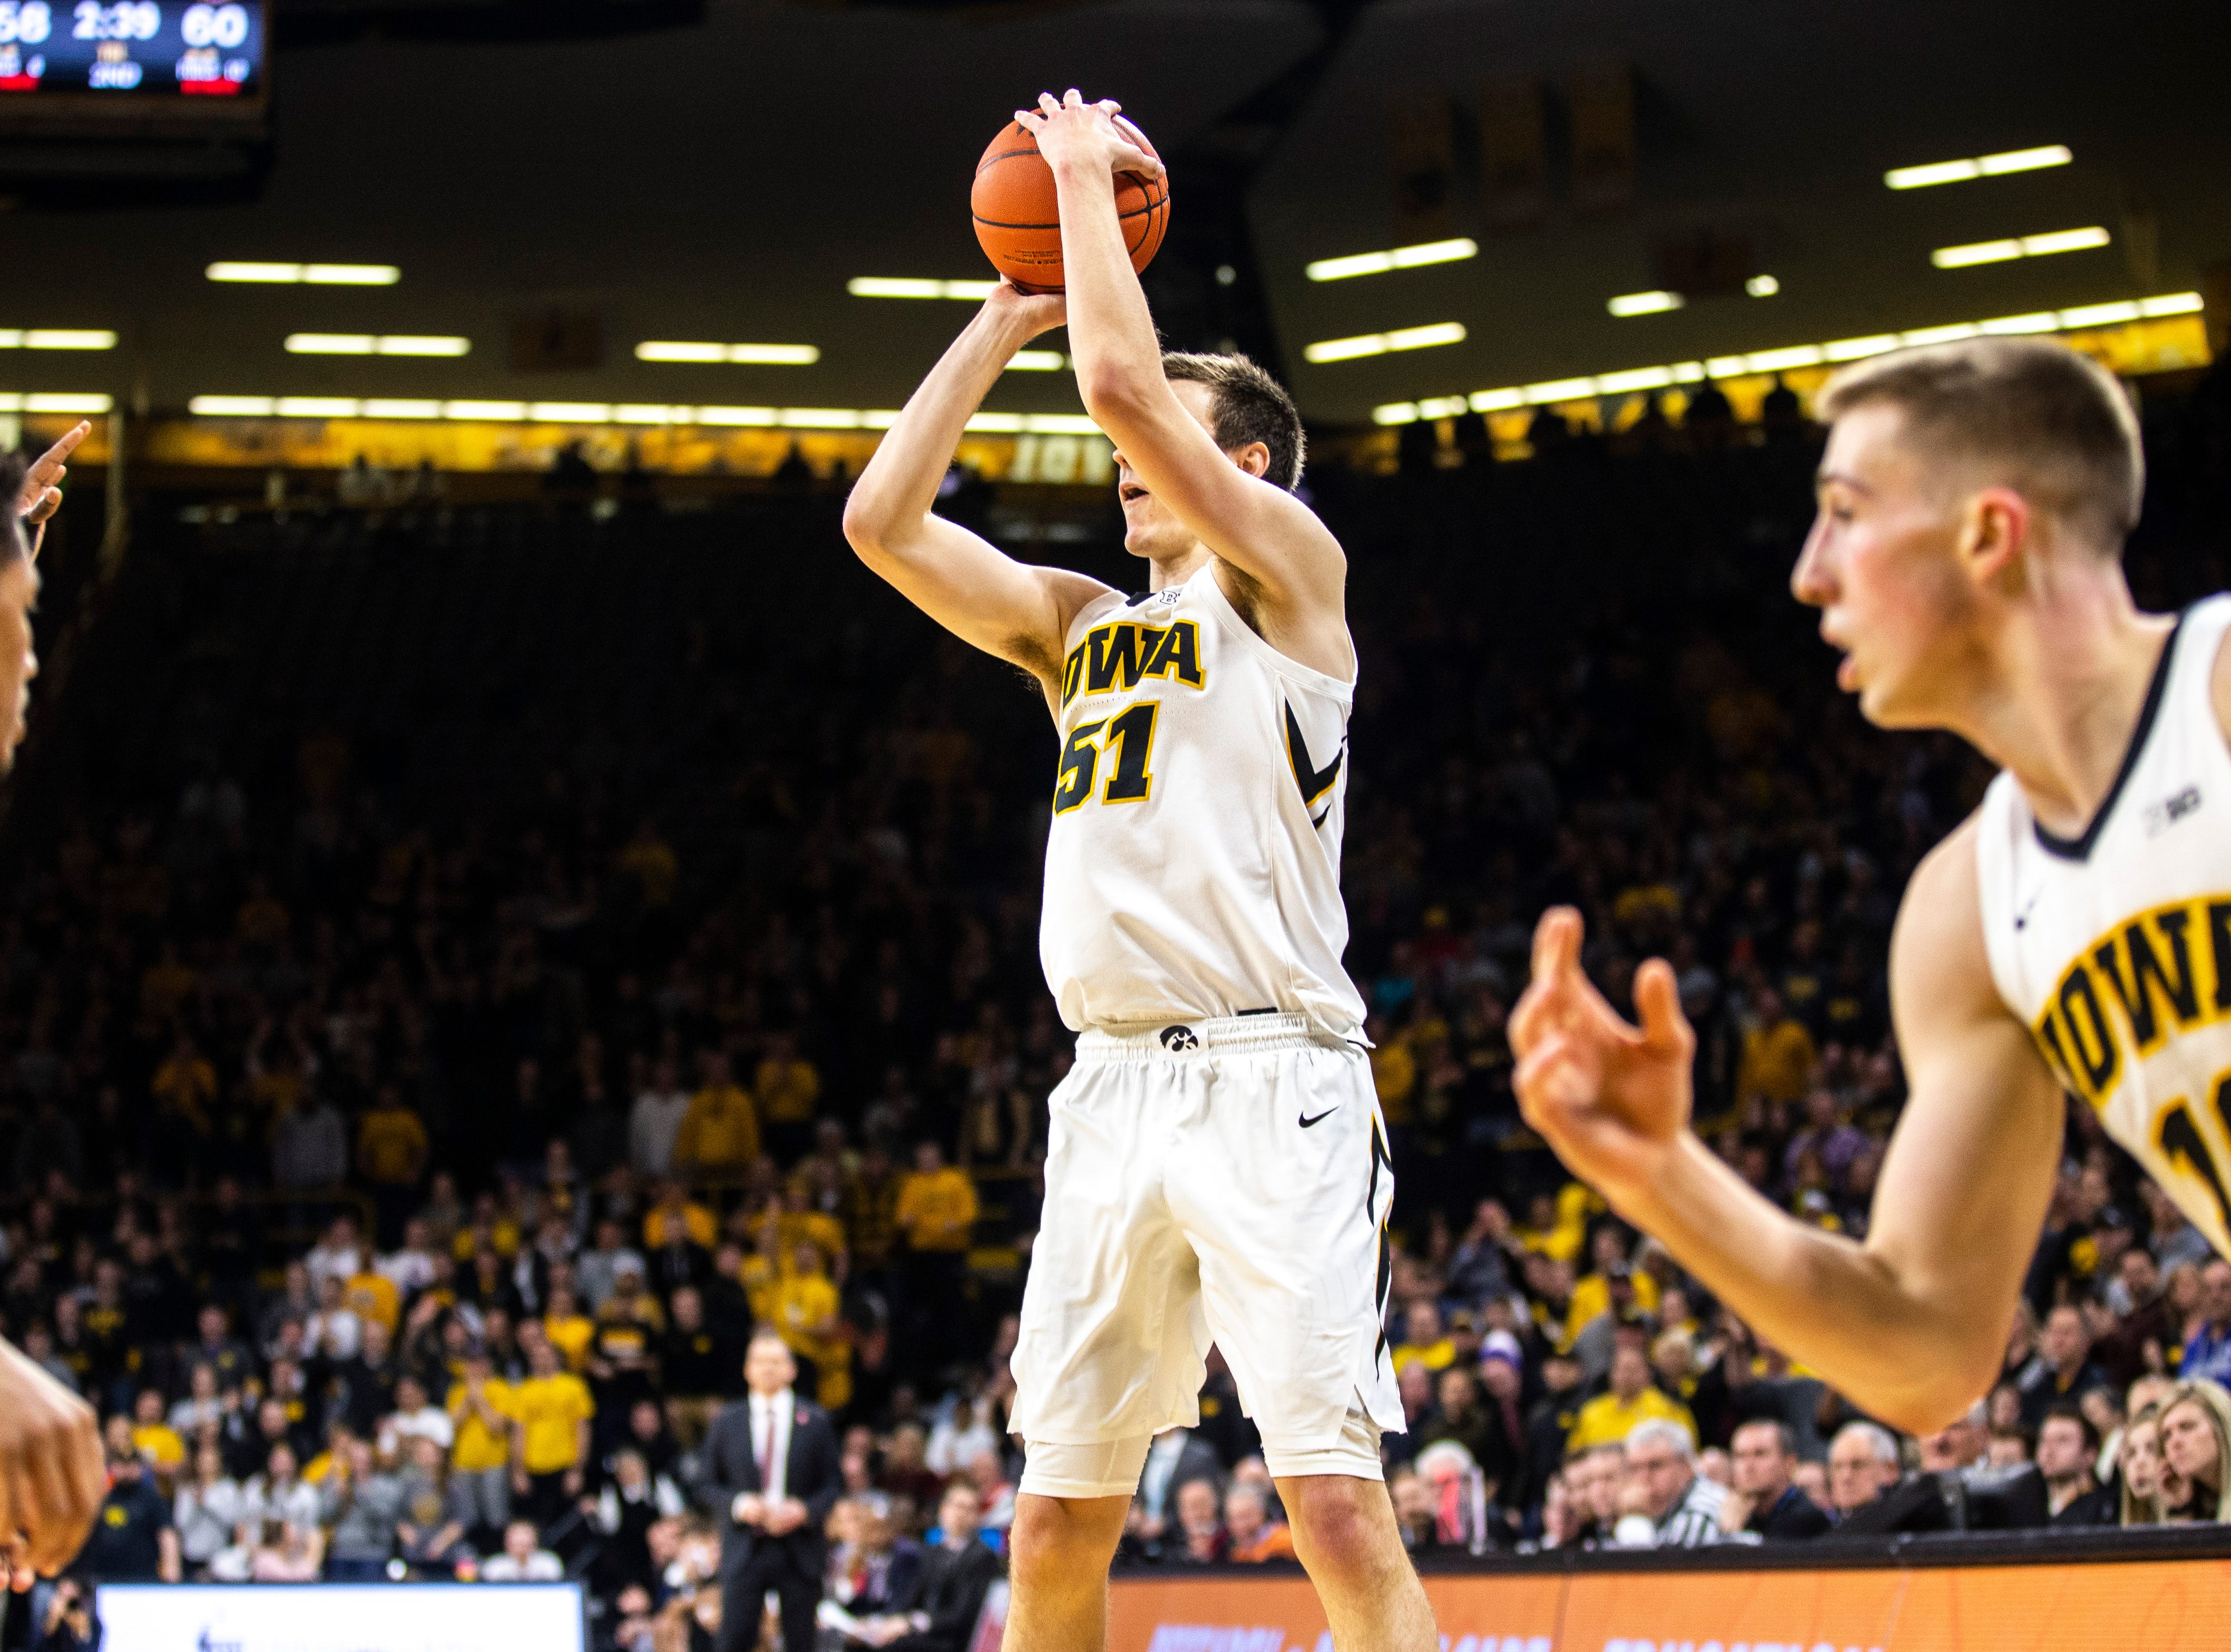 Iowa forward Nicholas Baer (51) shoots a 3-point basket during a NCAA Big Ten Conference men's basketball game on Tuesday, Feb. 19, 2019 at Carver-Hawkeye Arena in Iowa City, Iowa.